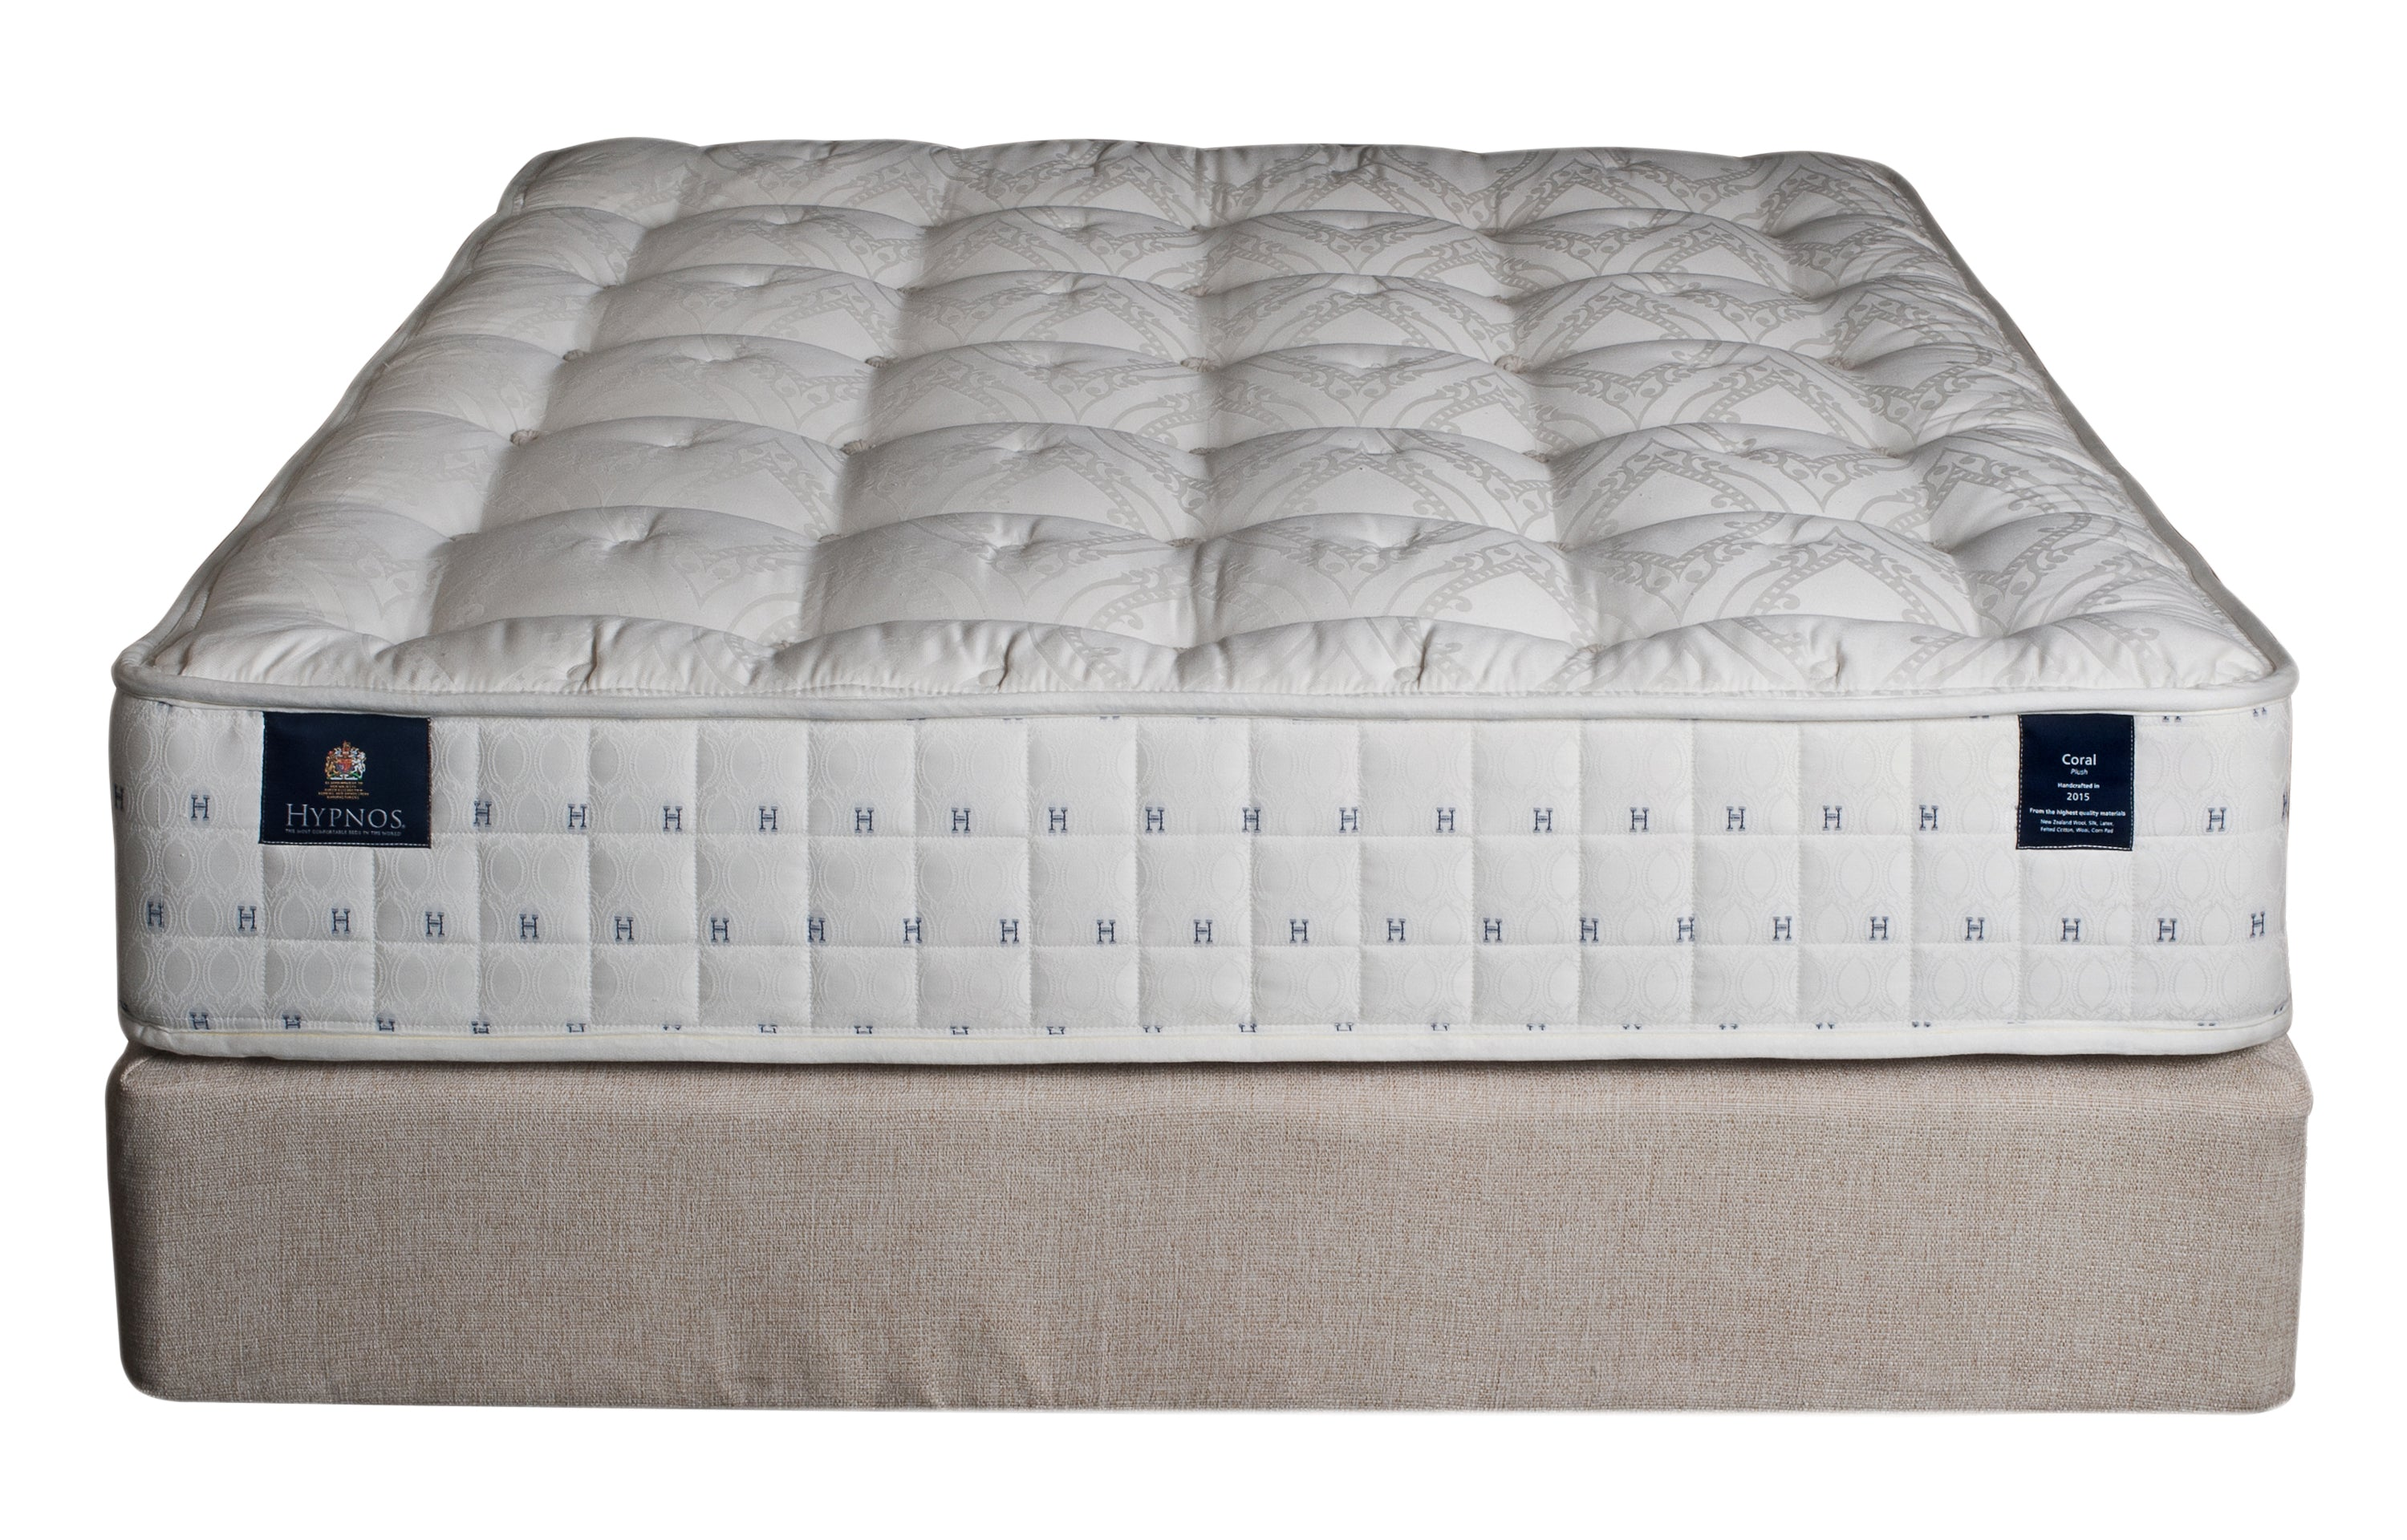 Hypnos Coral Plush Mattress - CLOSEOUT SALE!!!